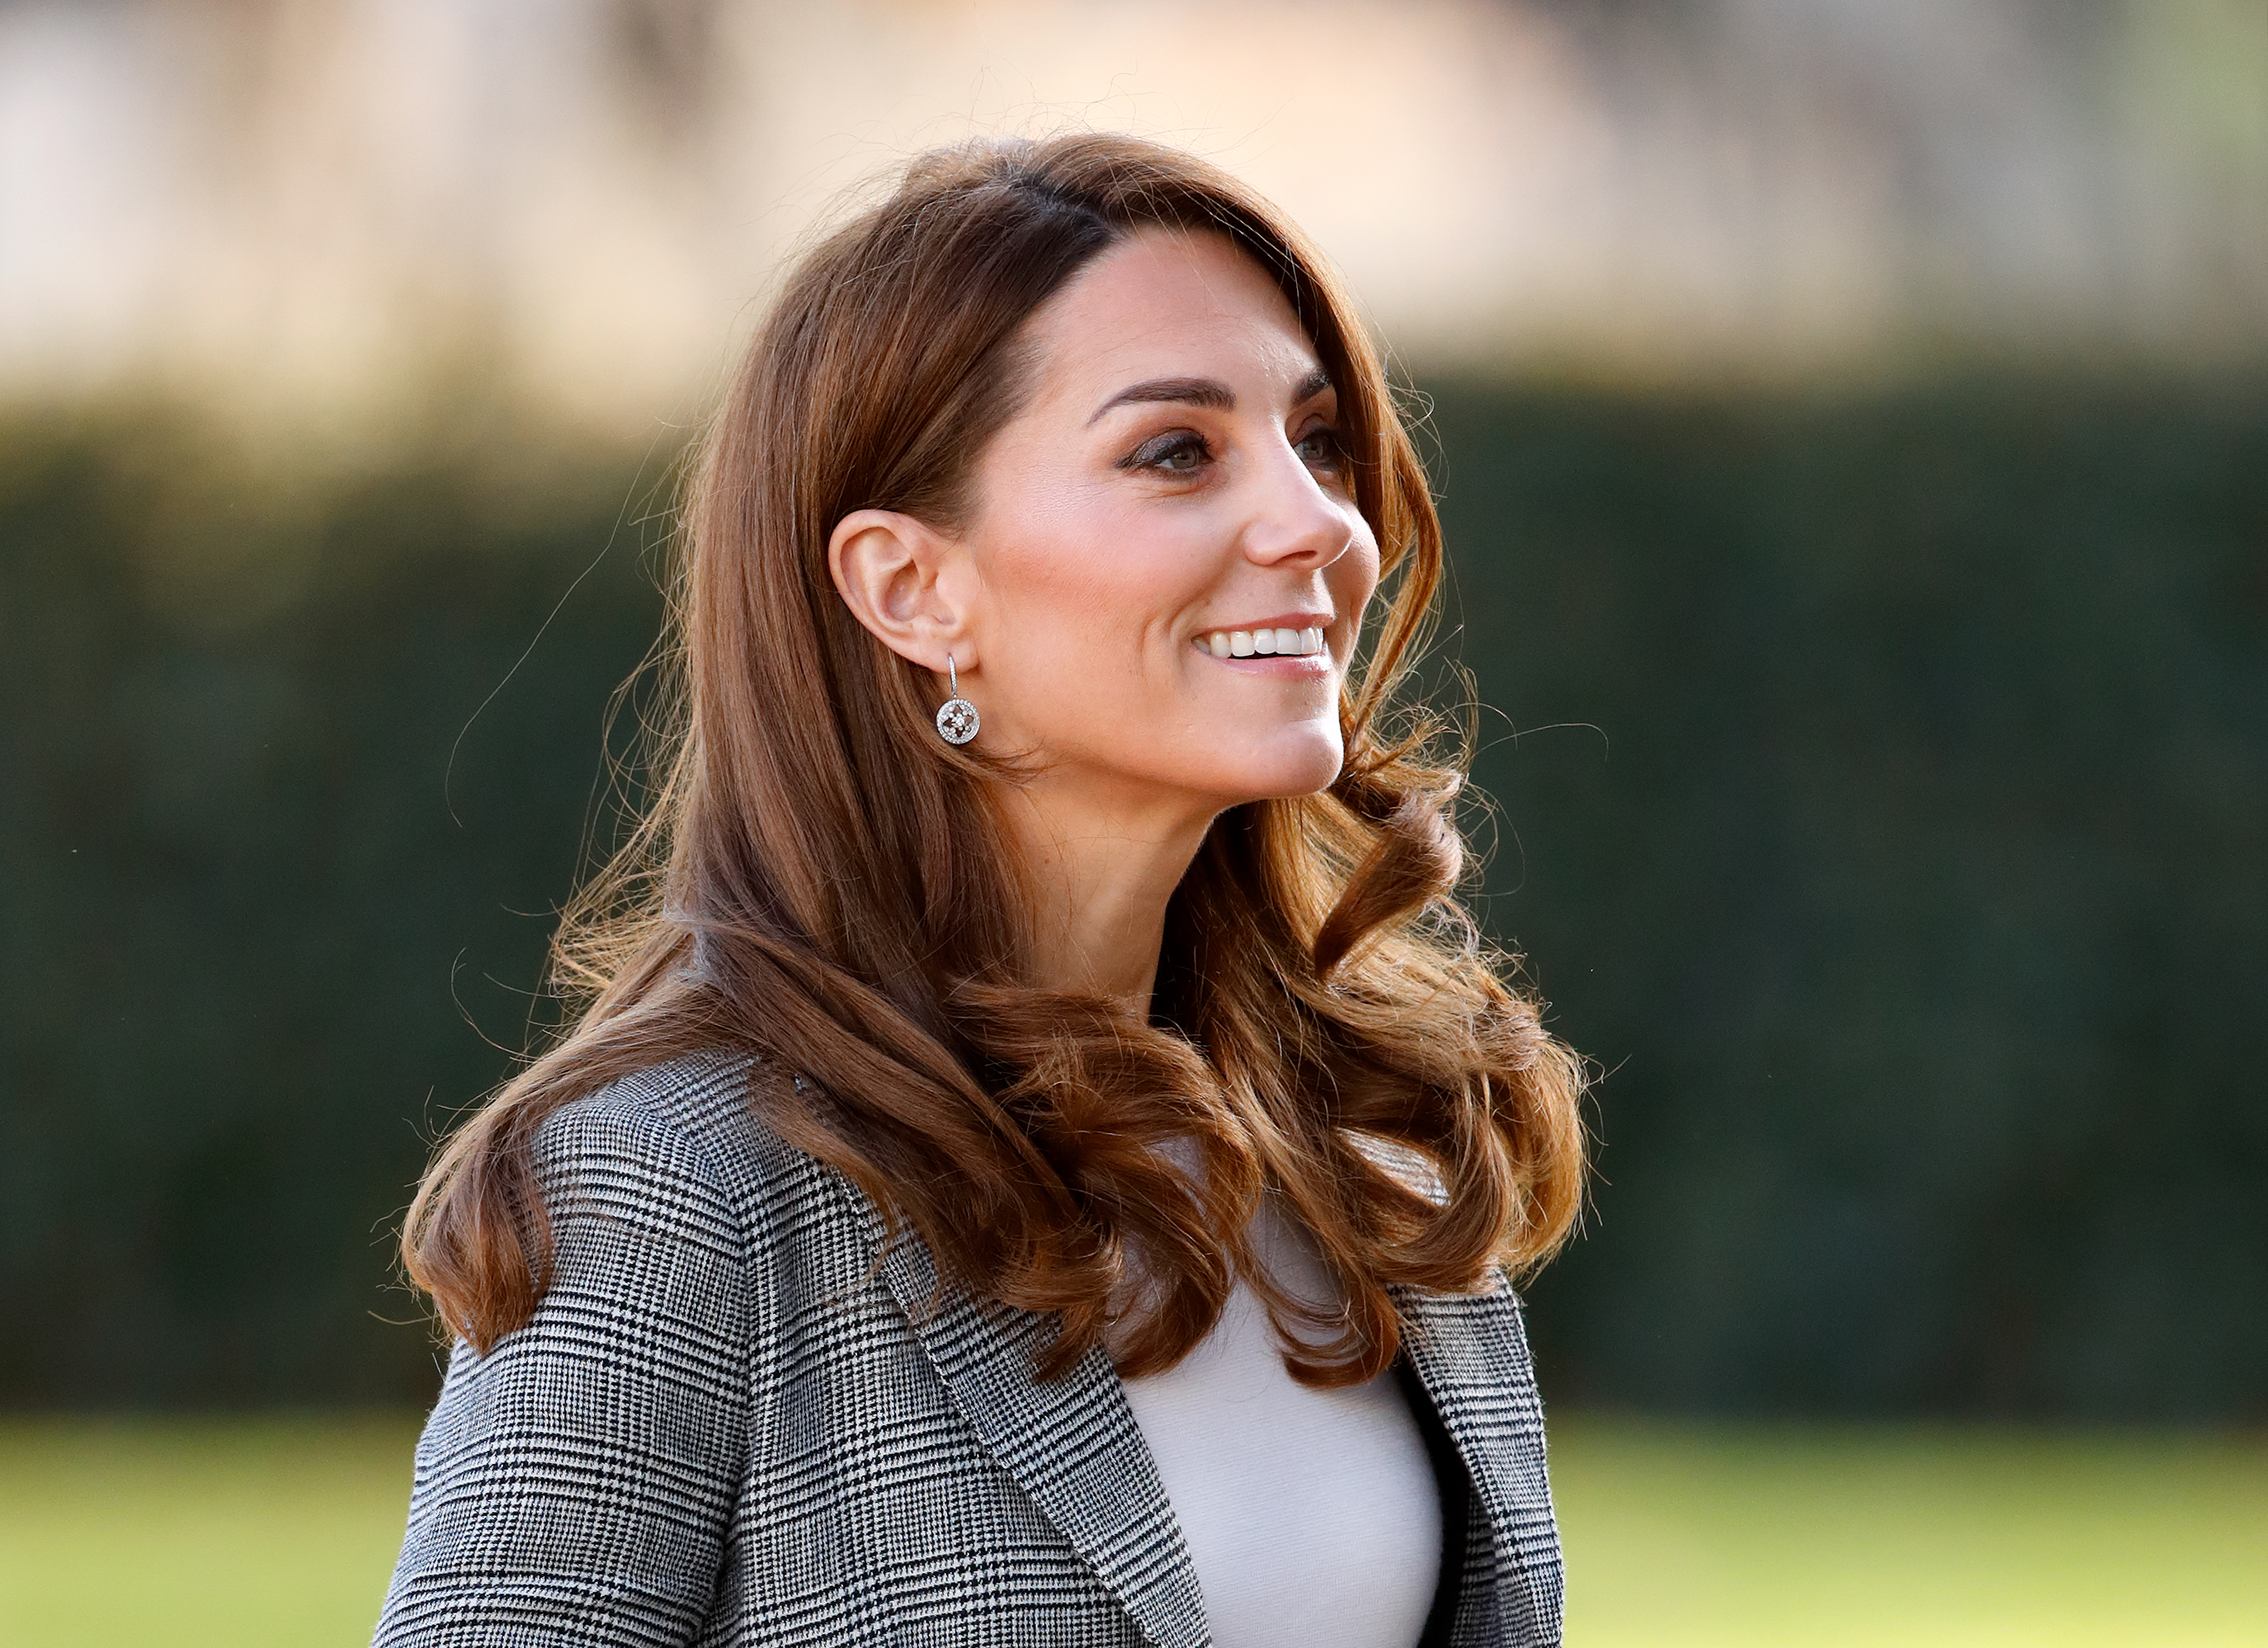 The Duchess of Cambridge attends an event in London on Nov. 12, 2019.